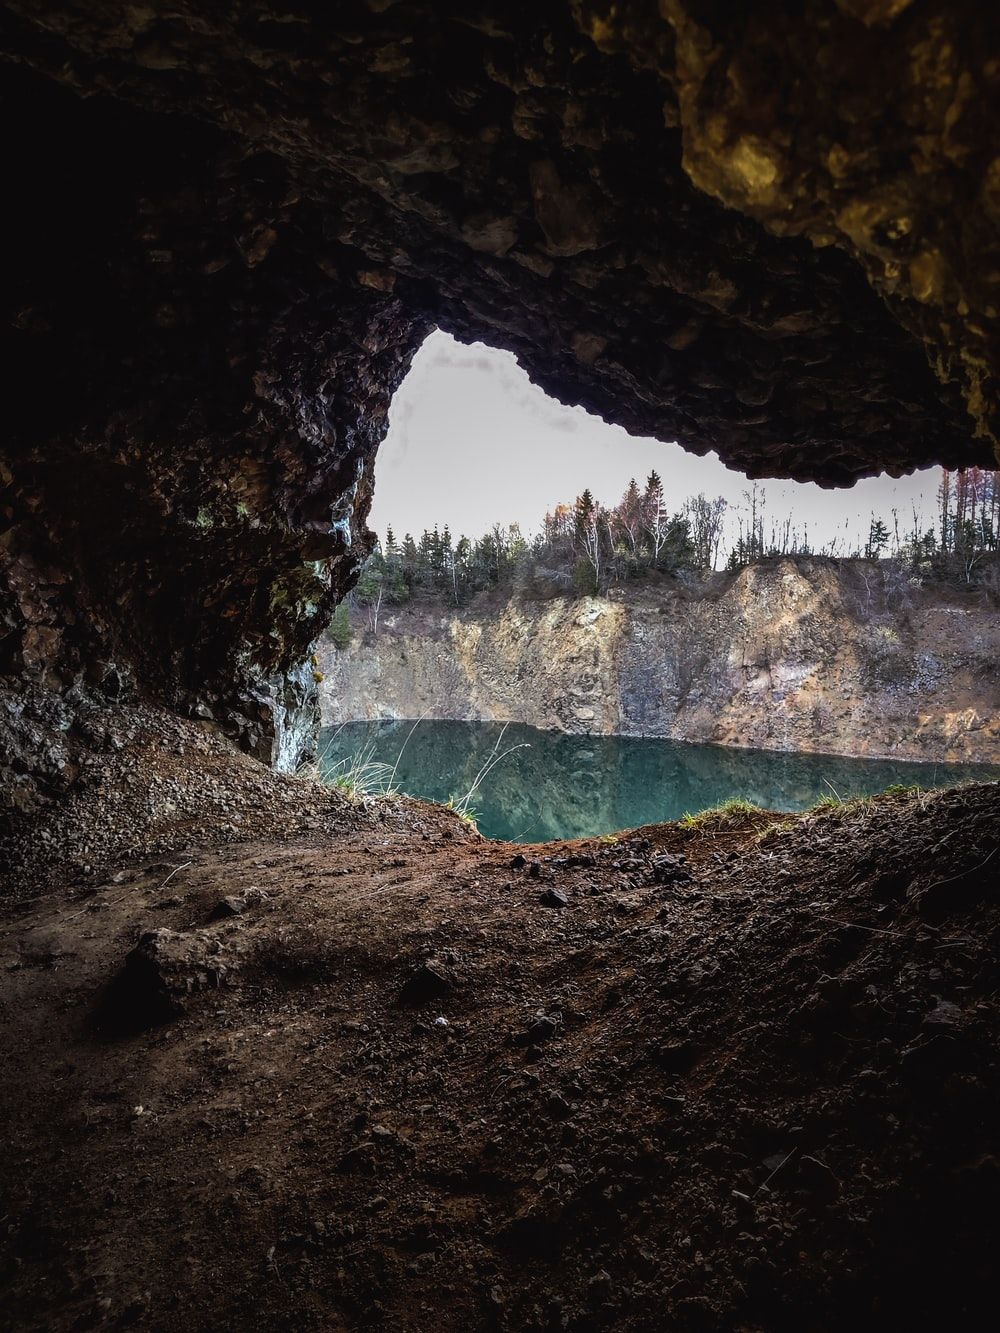 water falls in cave during daytime